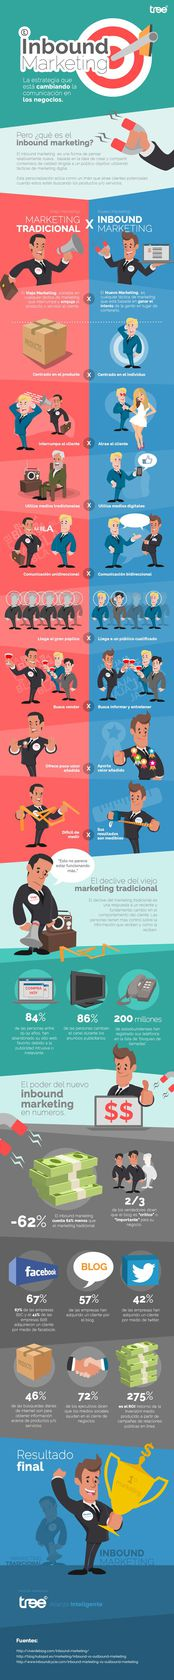 Que es Inbound Marketing - Infografía